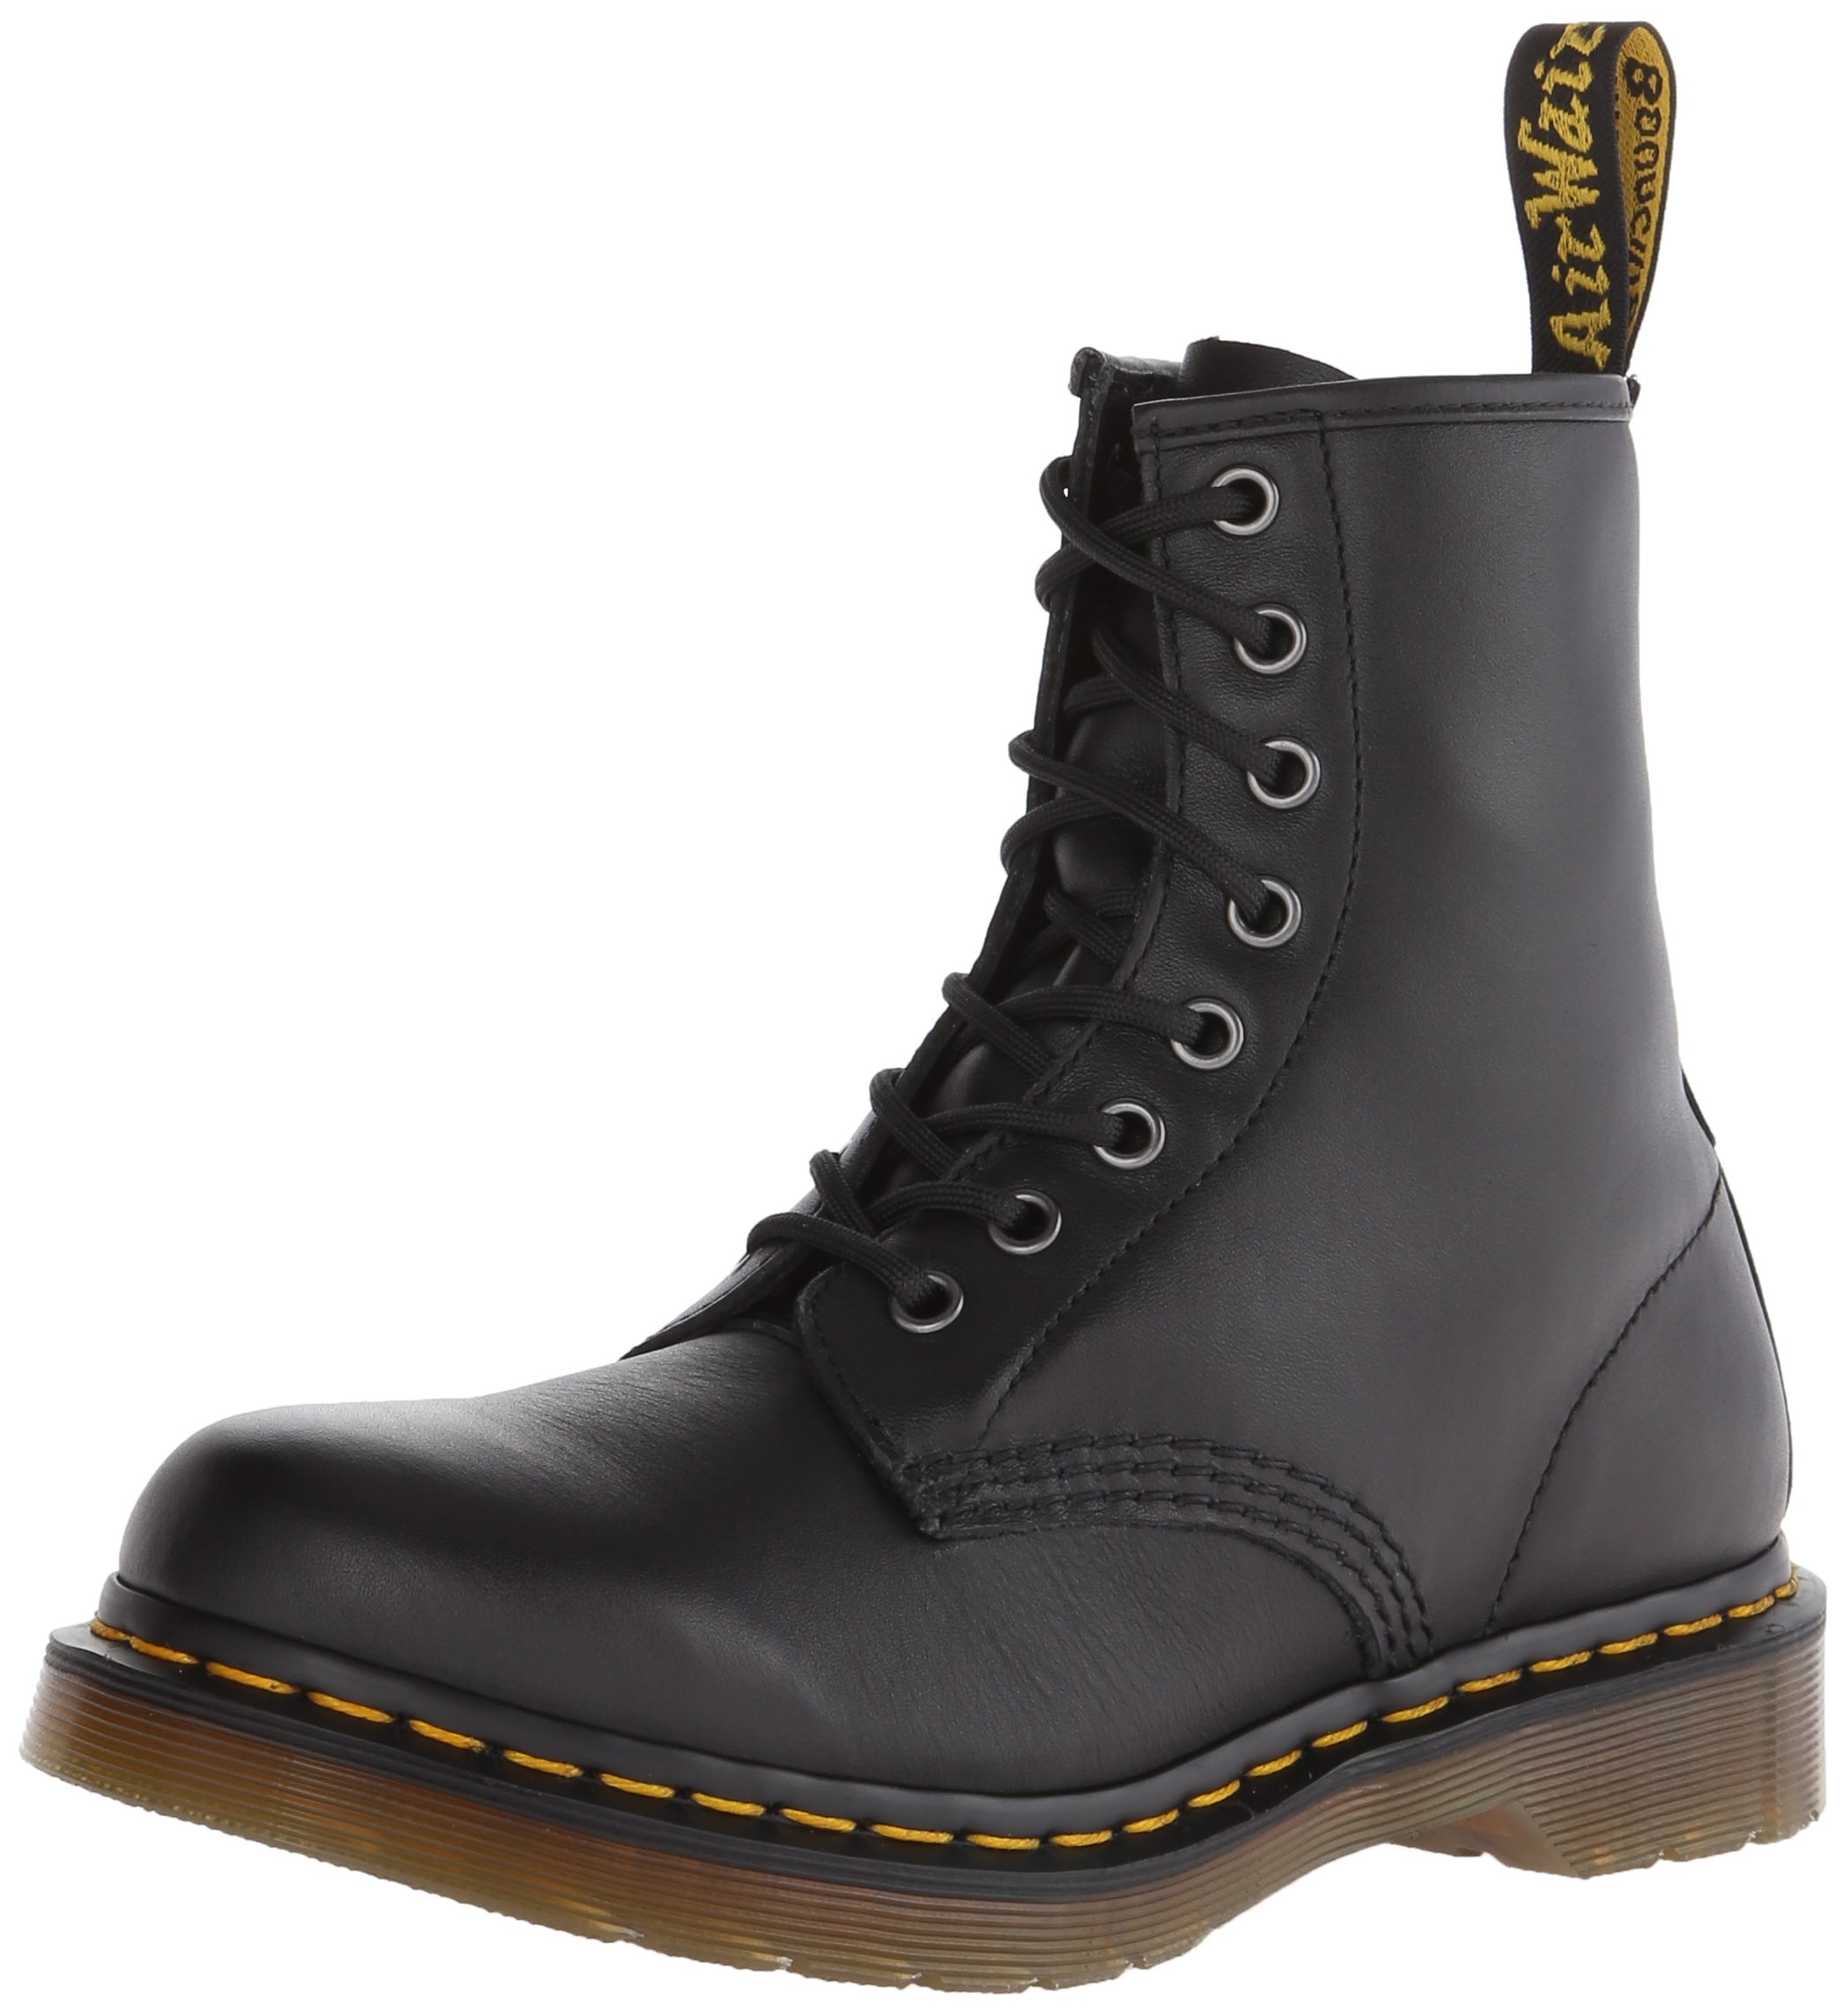 Dr. Martens Women's 1460 W 8 Eye Boot, Black, 6 M US/4 UK by Dr. Martens